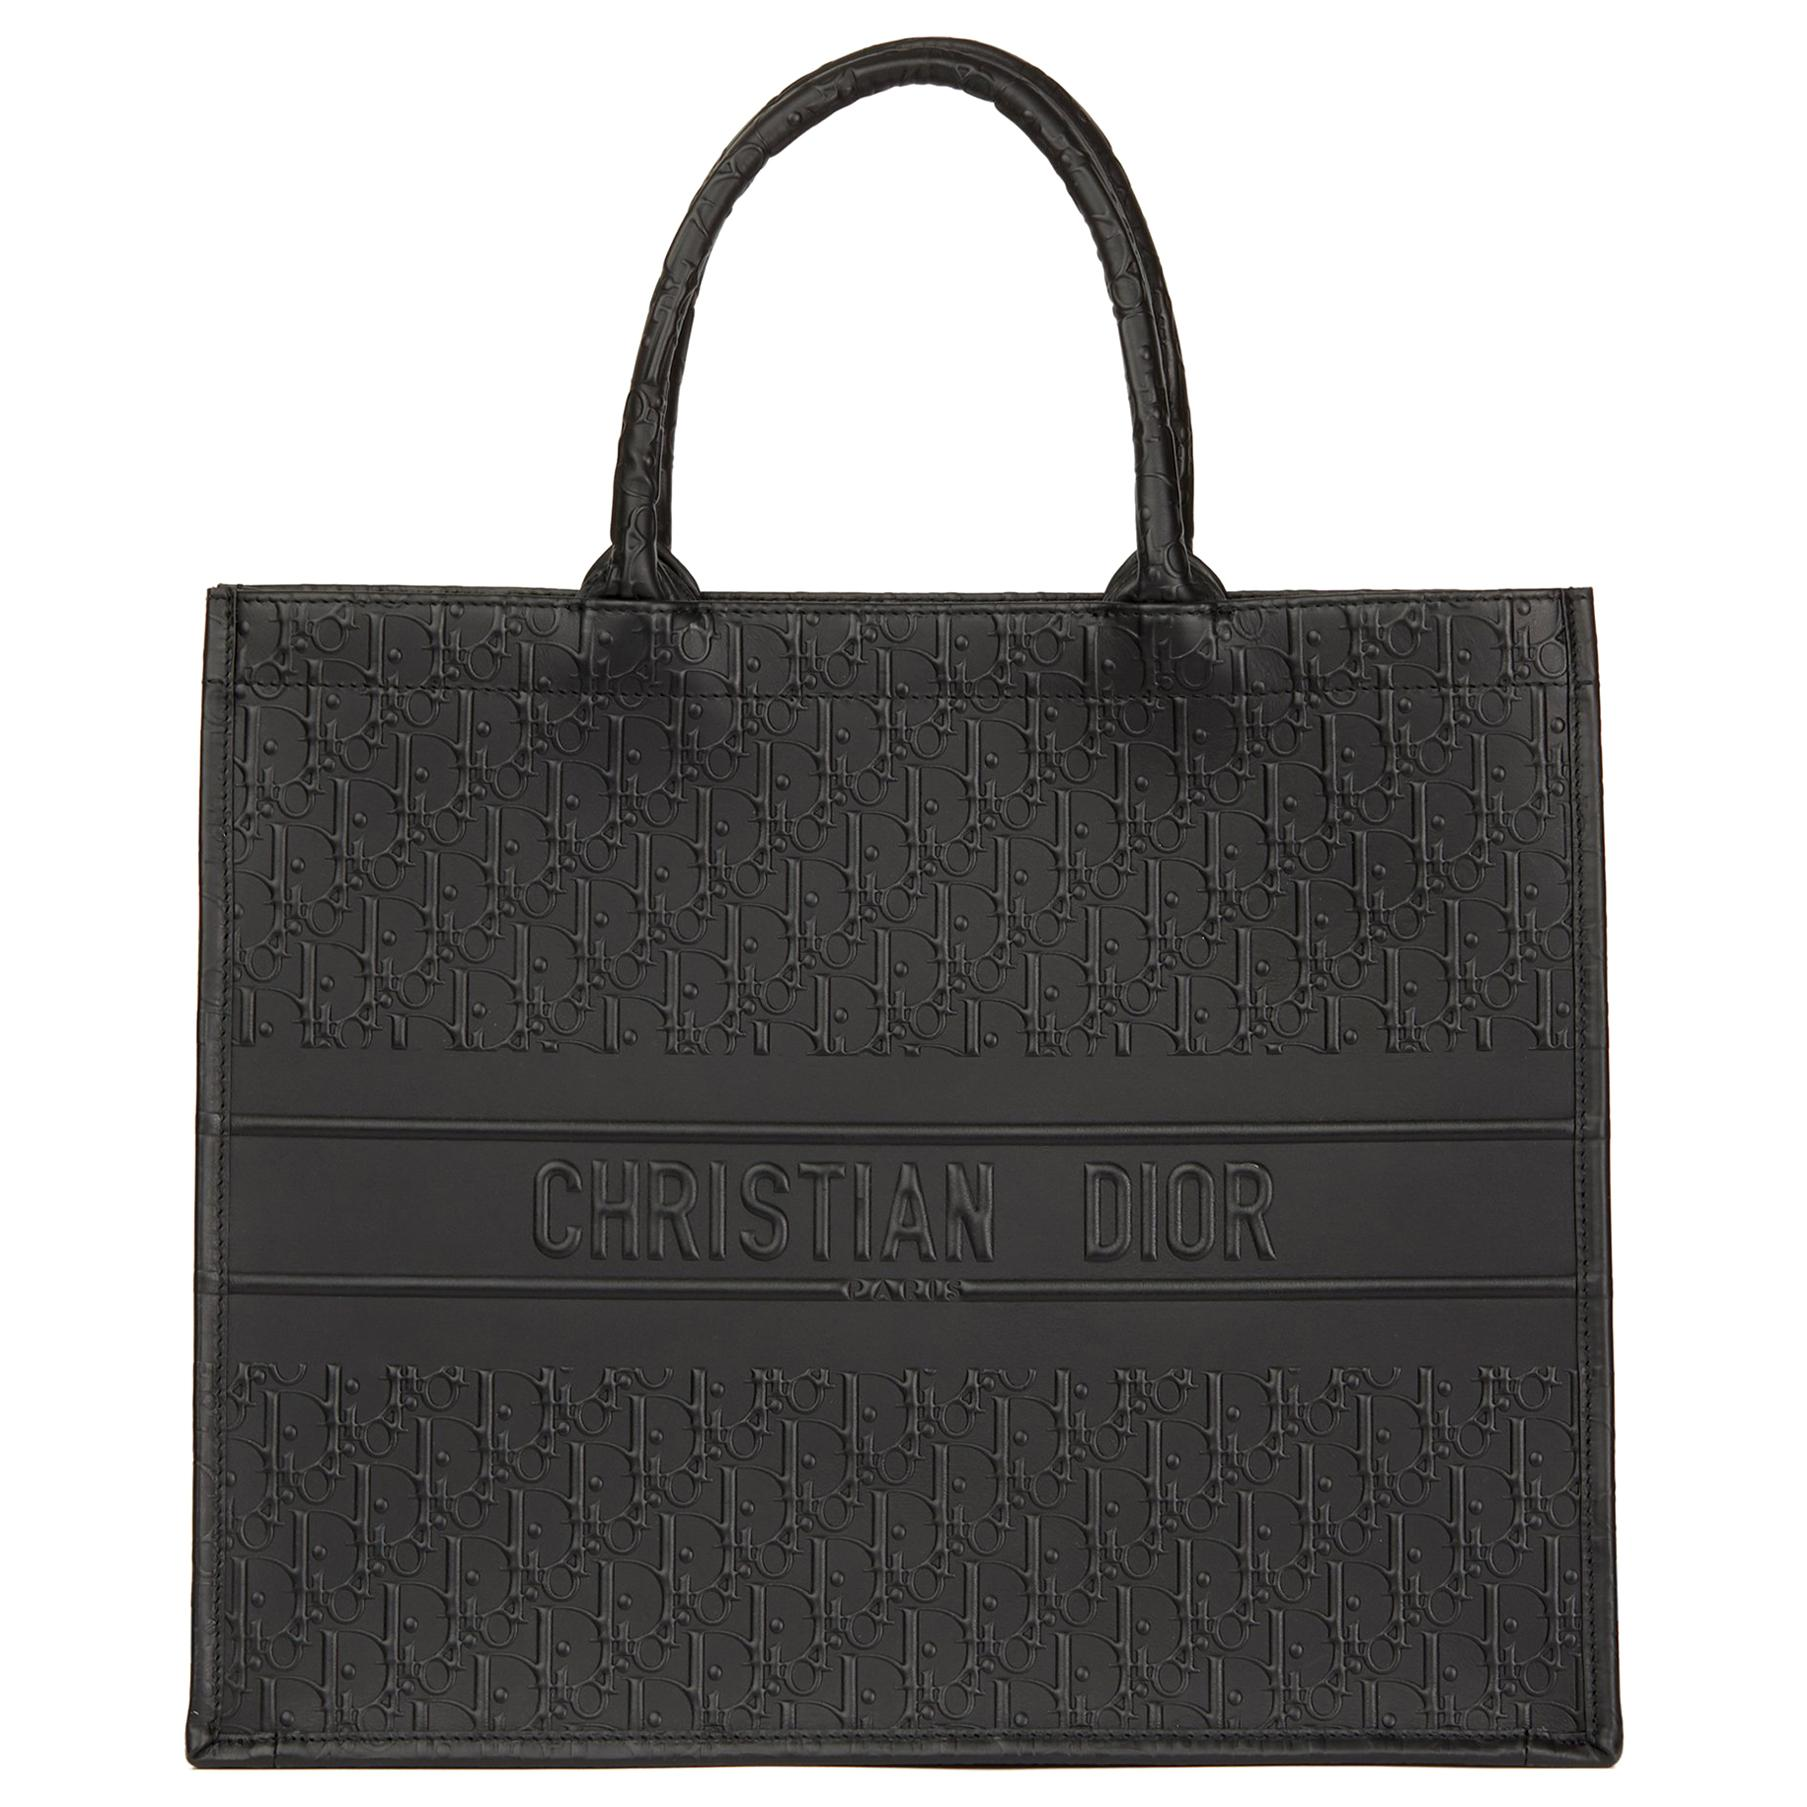 e024099195f3 2016 Celine Black Smooth Calfskin Leather Debossed Micro Luggage Tote For  Sale at 1stdibs